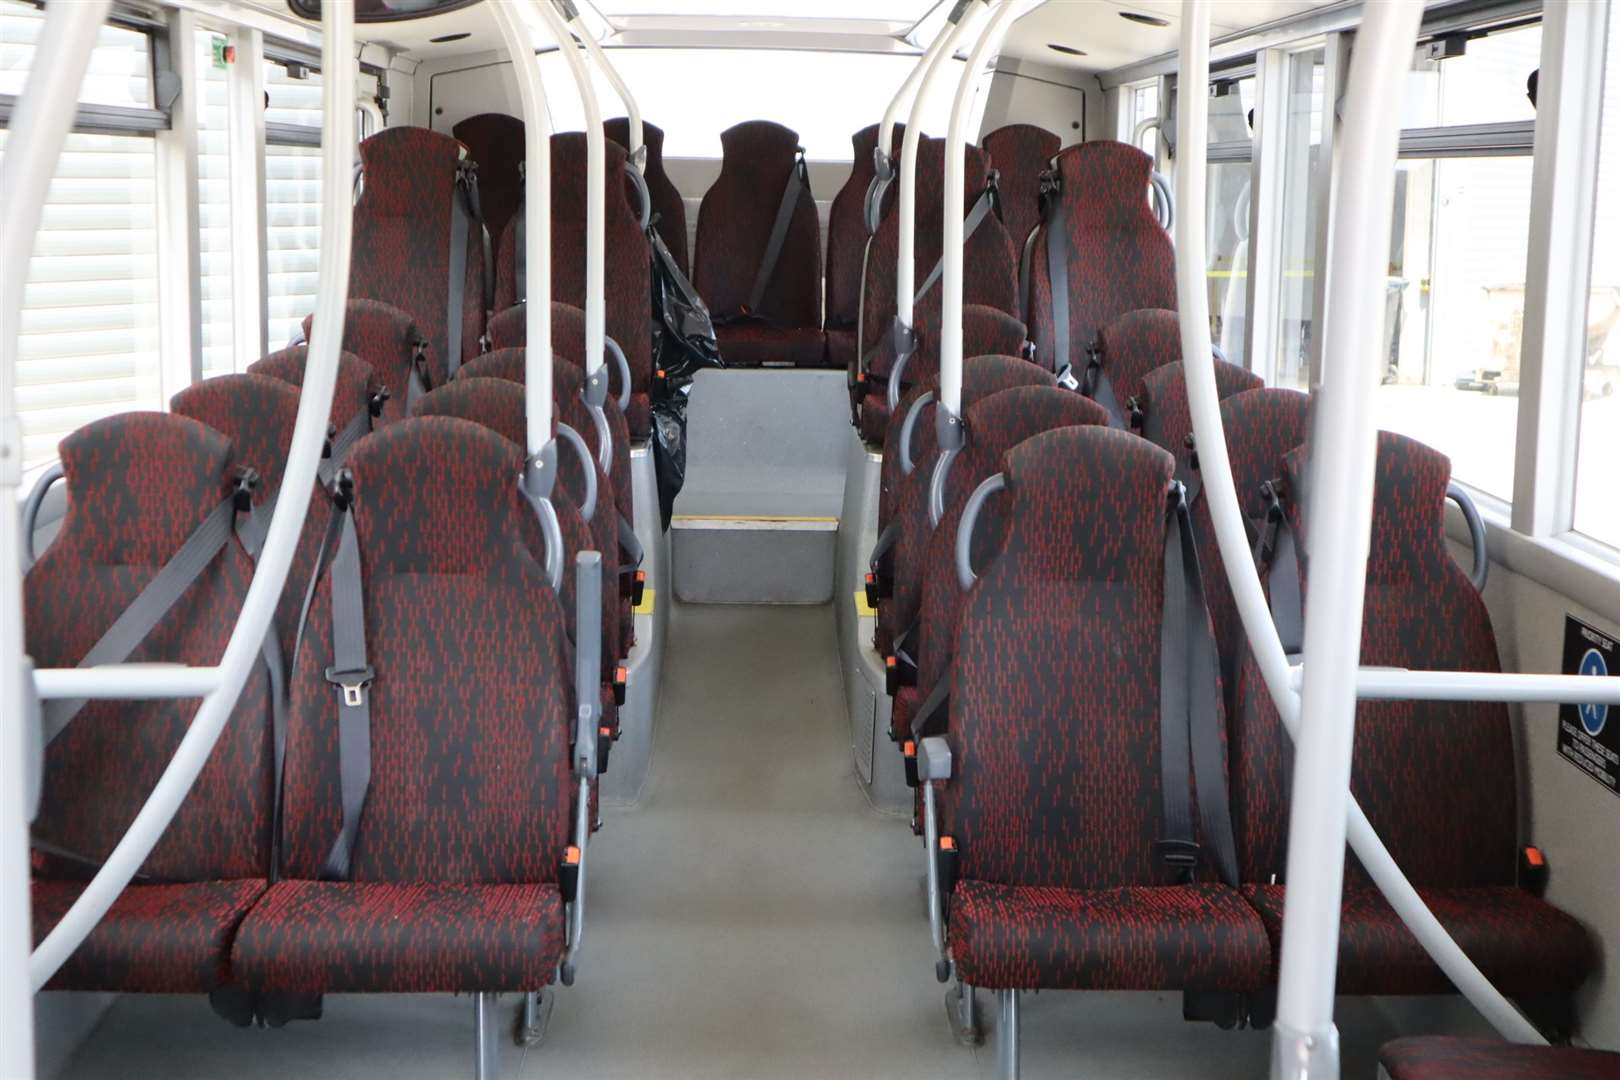 Inside a Travelmasters bus